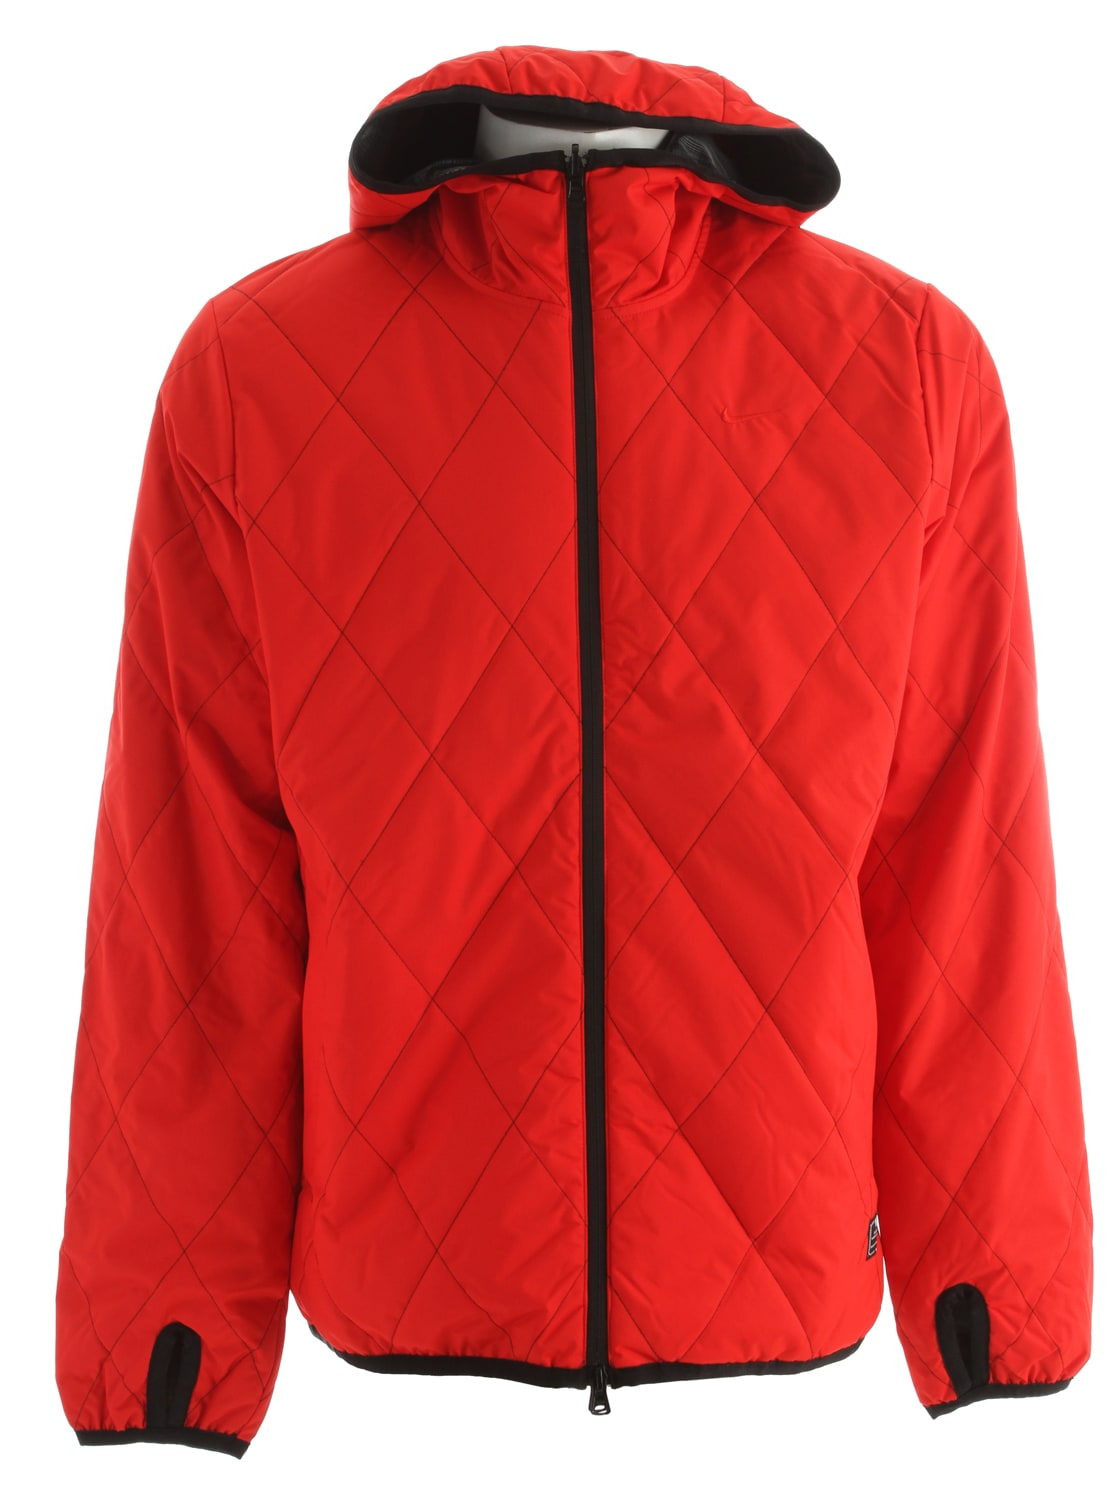 Check out the full collection of snow jackets, coats and outerwear for women and girls at the official online store of Roxy. Free shipping every day! Skip to products grid selection. Jet Ski Snow Jacket. 2. $ Quick View. 2 Colors. More colors. Jet Ski Premium Snow Jacket. 2. $ Quick View. 3 Colors. More colors. Quinn Snow Jacket.